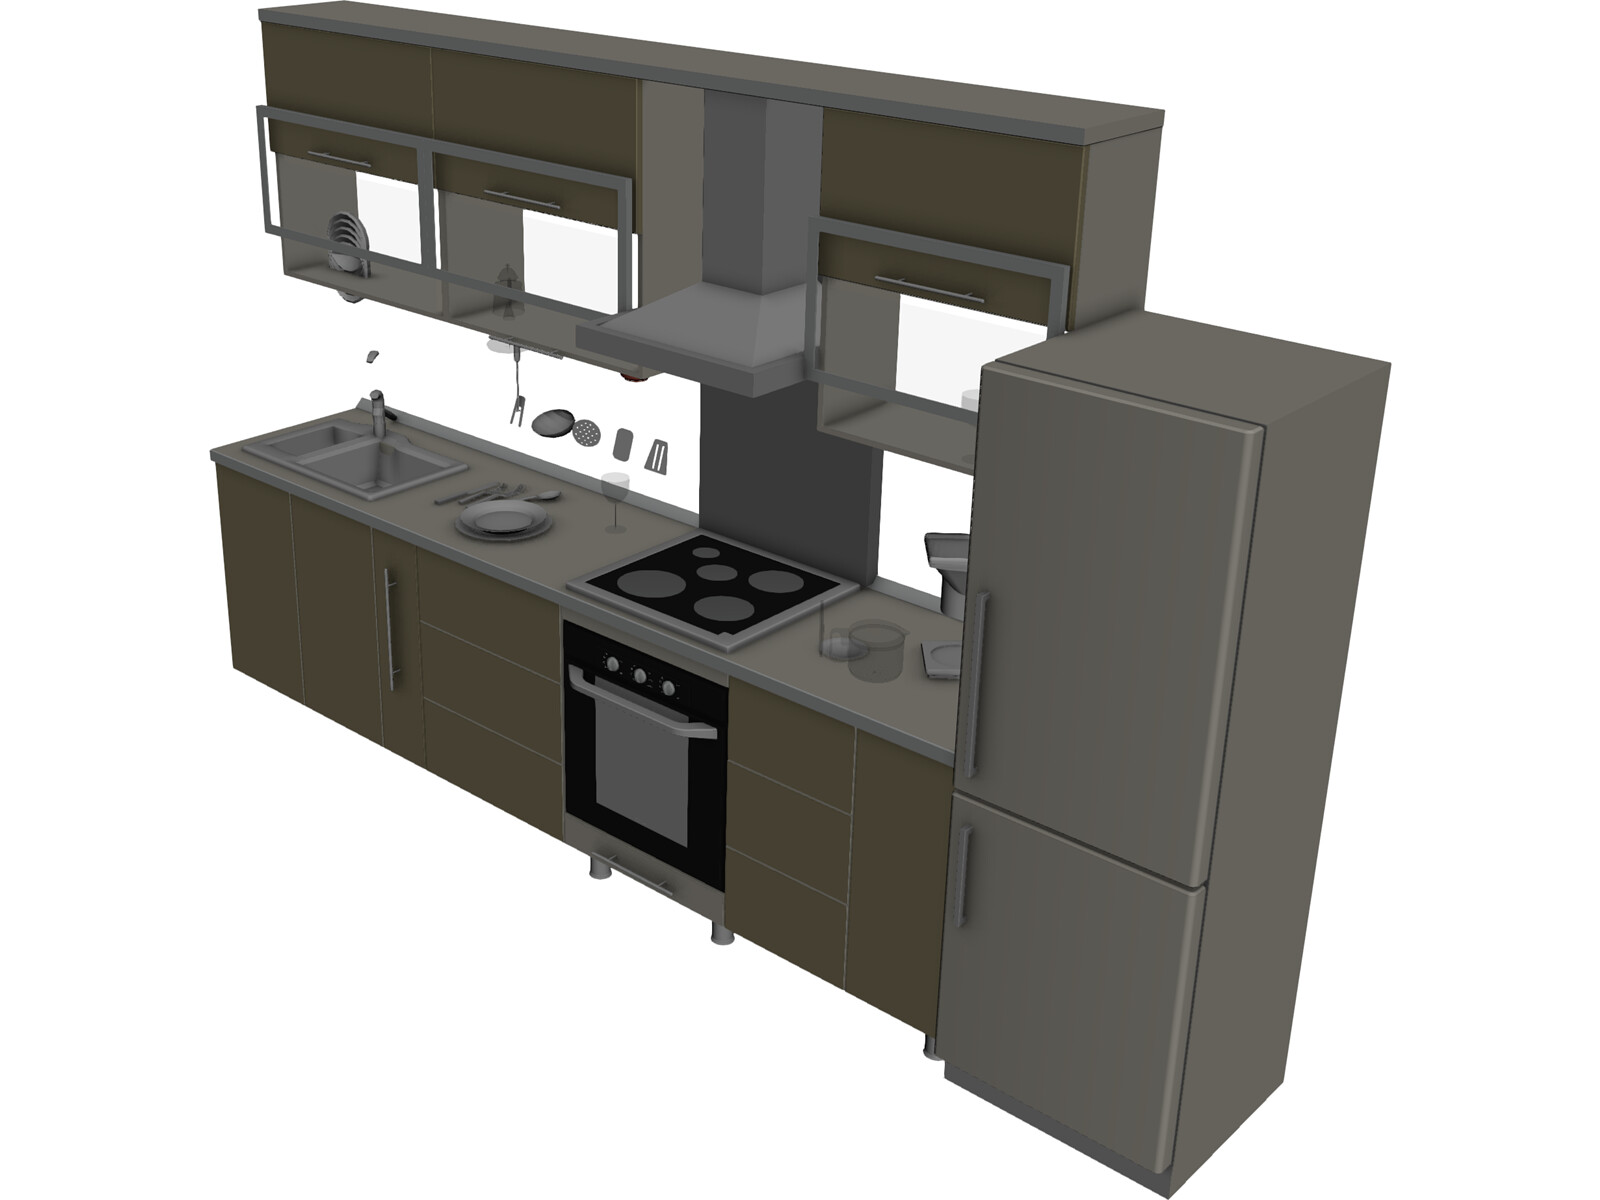 Kitchen 3d Model 3d Cad Browser